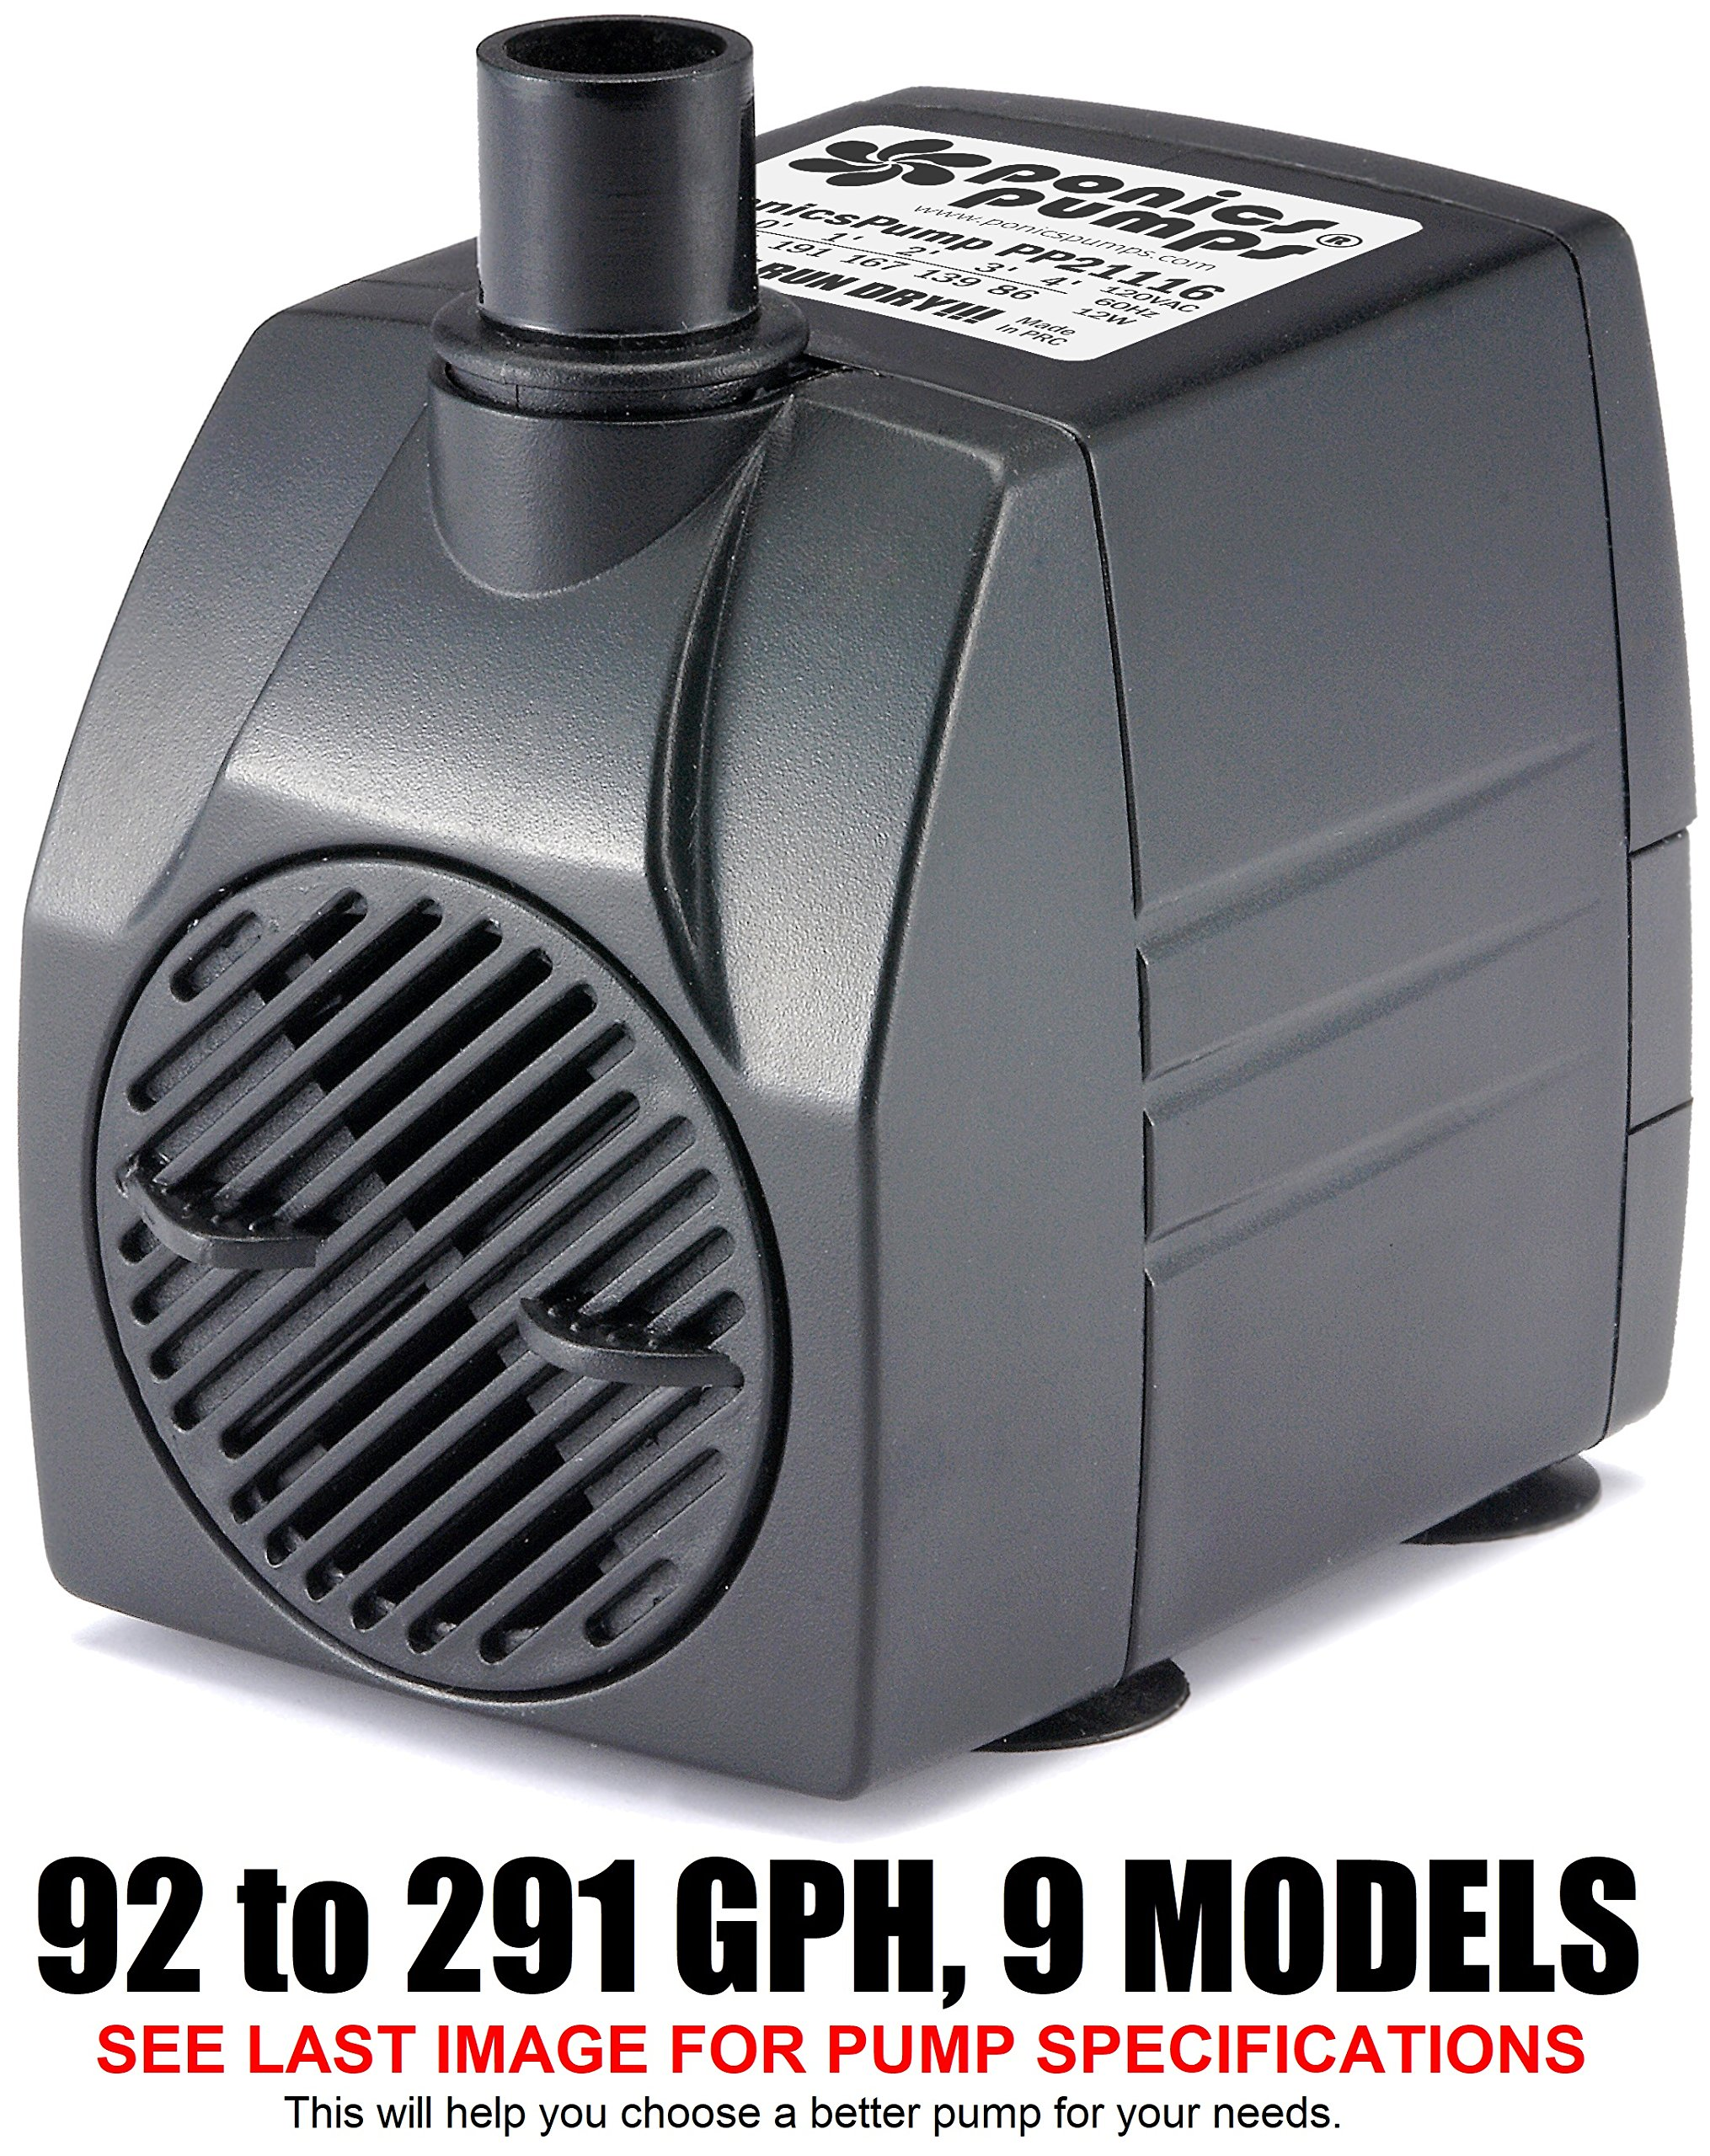 PonicsPump PP21116: 211 GPH Submersible Pump with 16' Cord - 16W… for Hydroponics, Aquaponics, Fountains, Ponds, Statuary, Aquariums & More. Comes with 1 Year Limited Warranty.